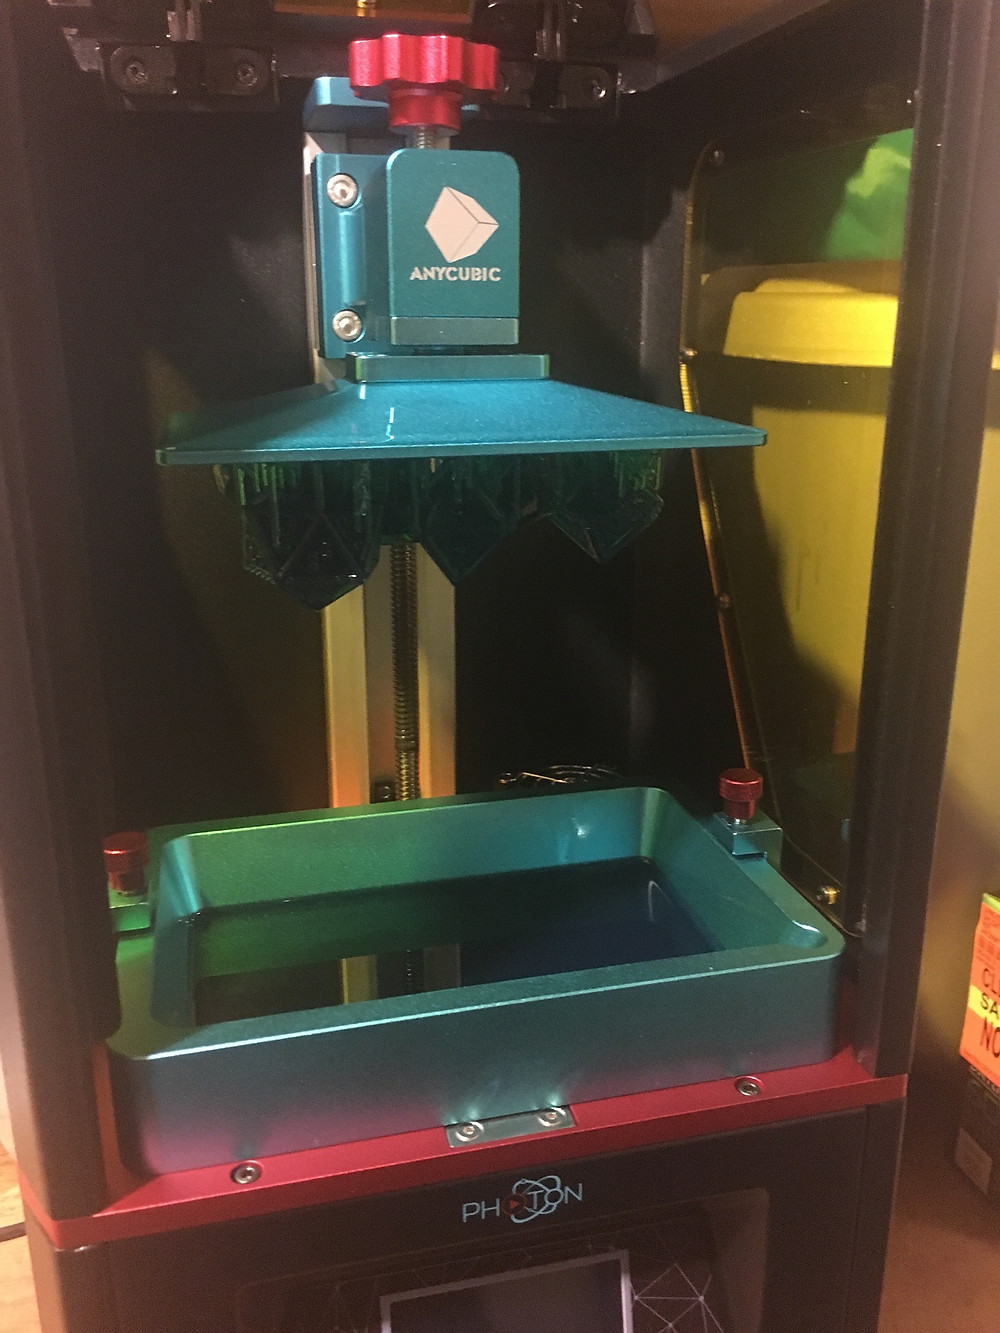 Inside of 3D printer showing build area. There is a flat metal build plate at the top with printed dice hanging off the bottom. Below this is a vat containing liquid resin